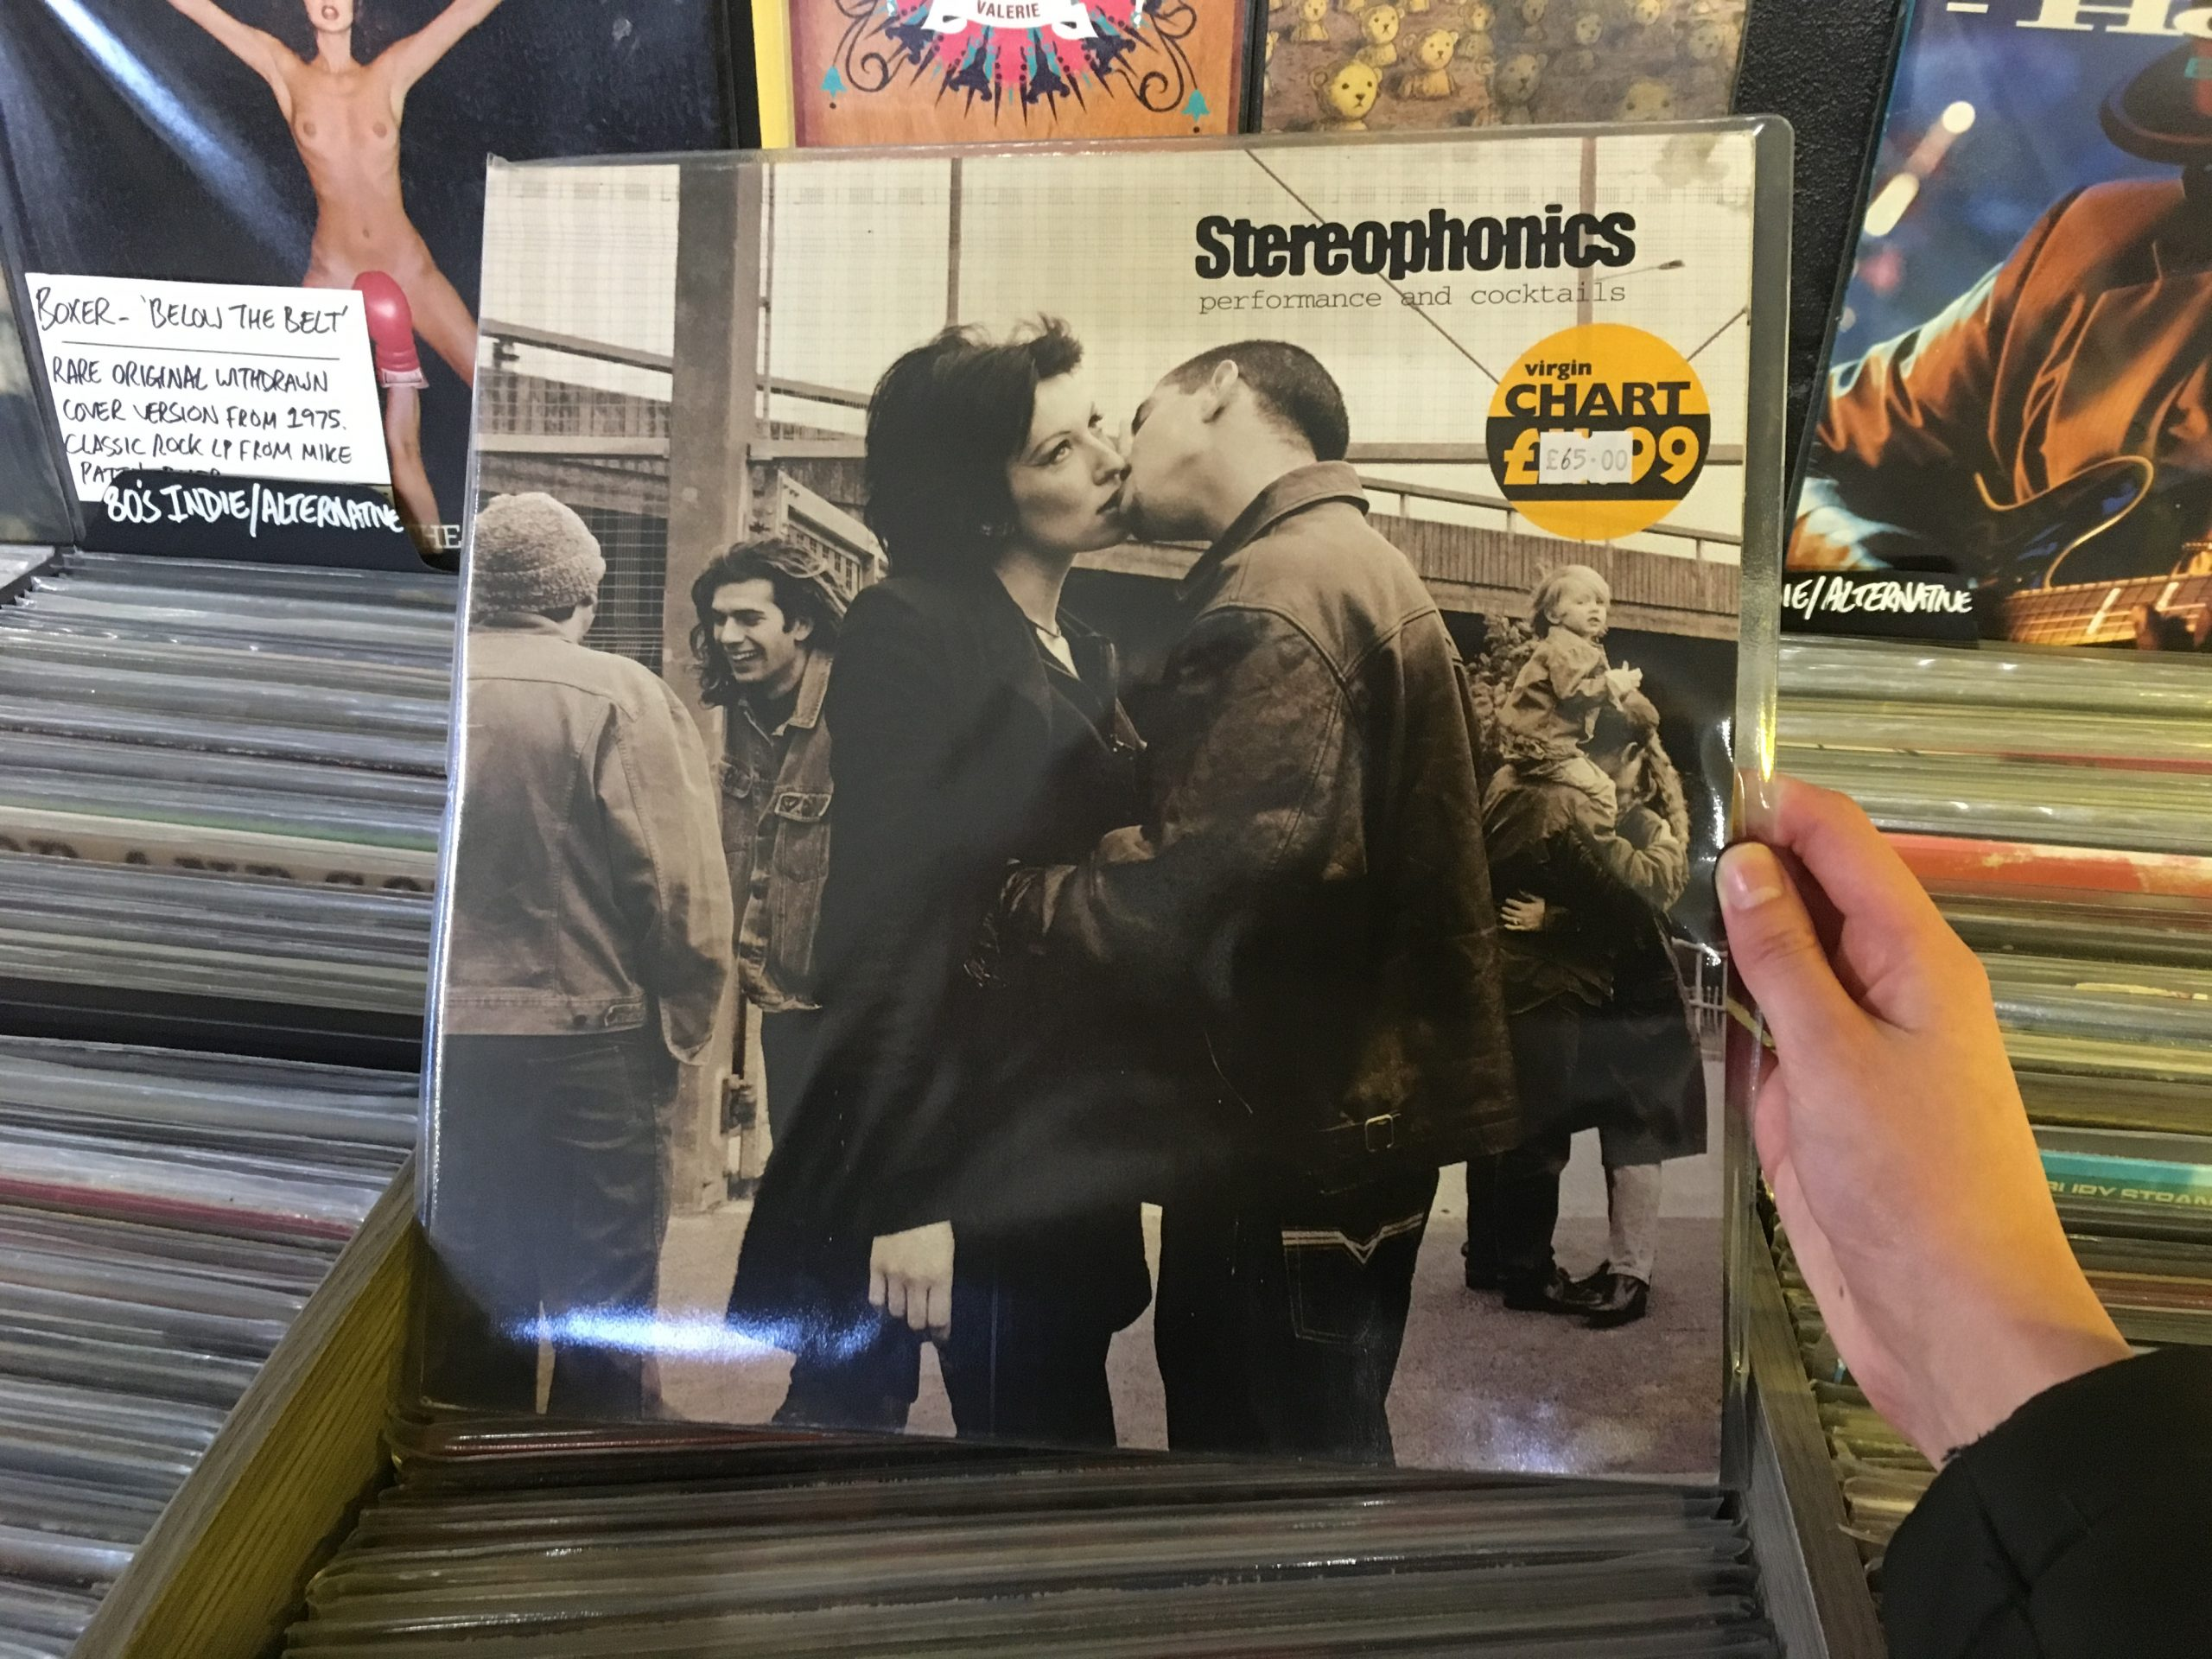 Stereophonics record